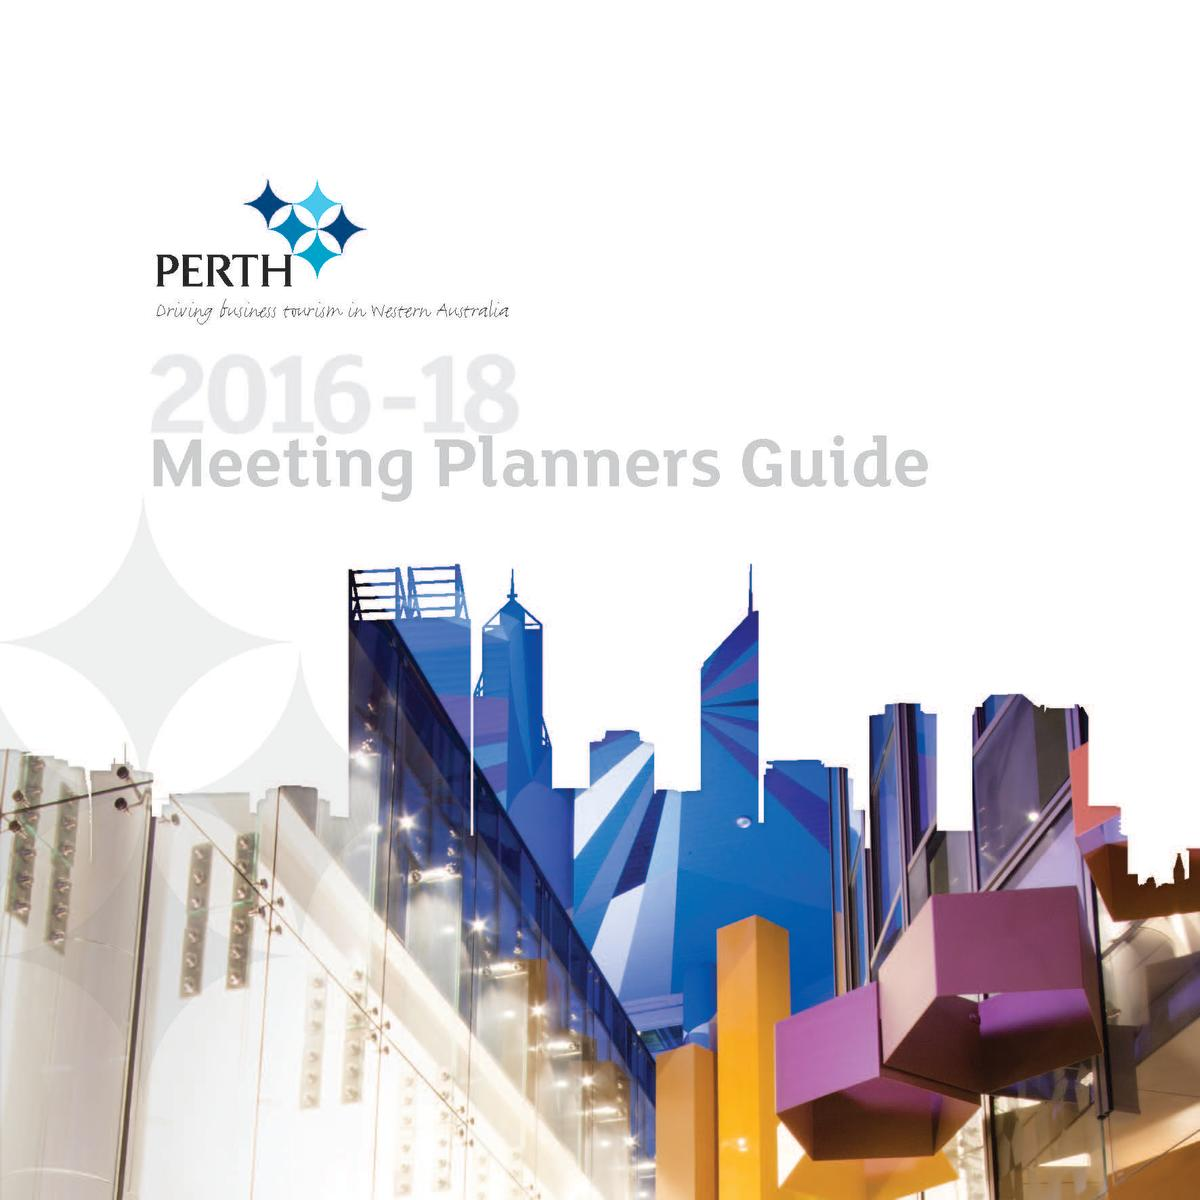 Meeting Planners Guide 2016-2018